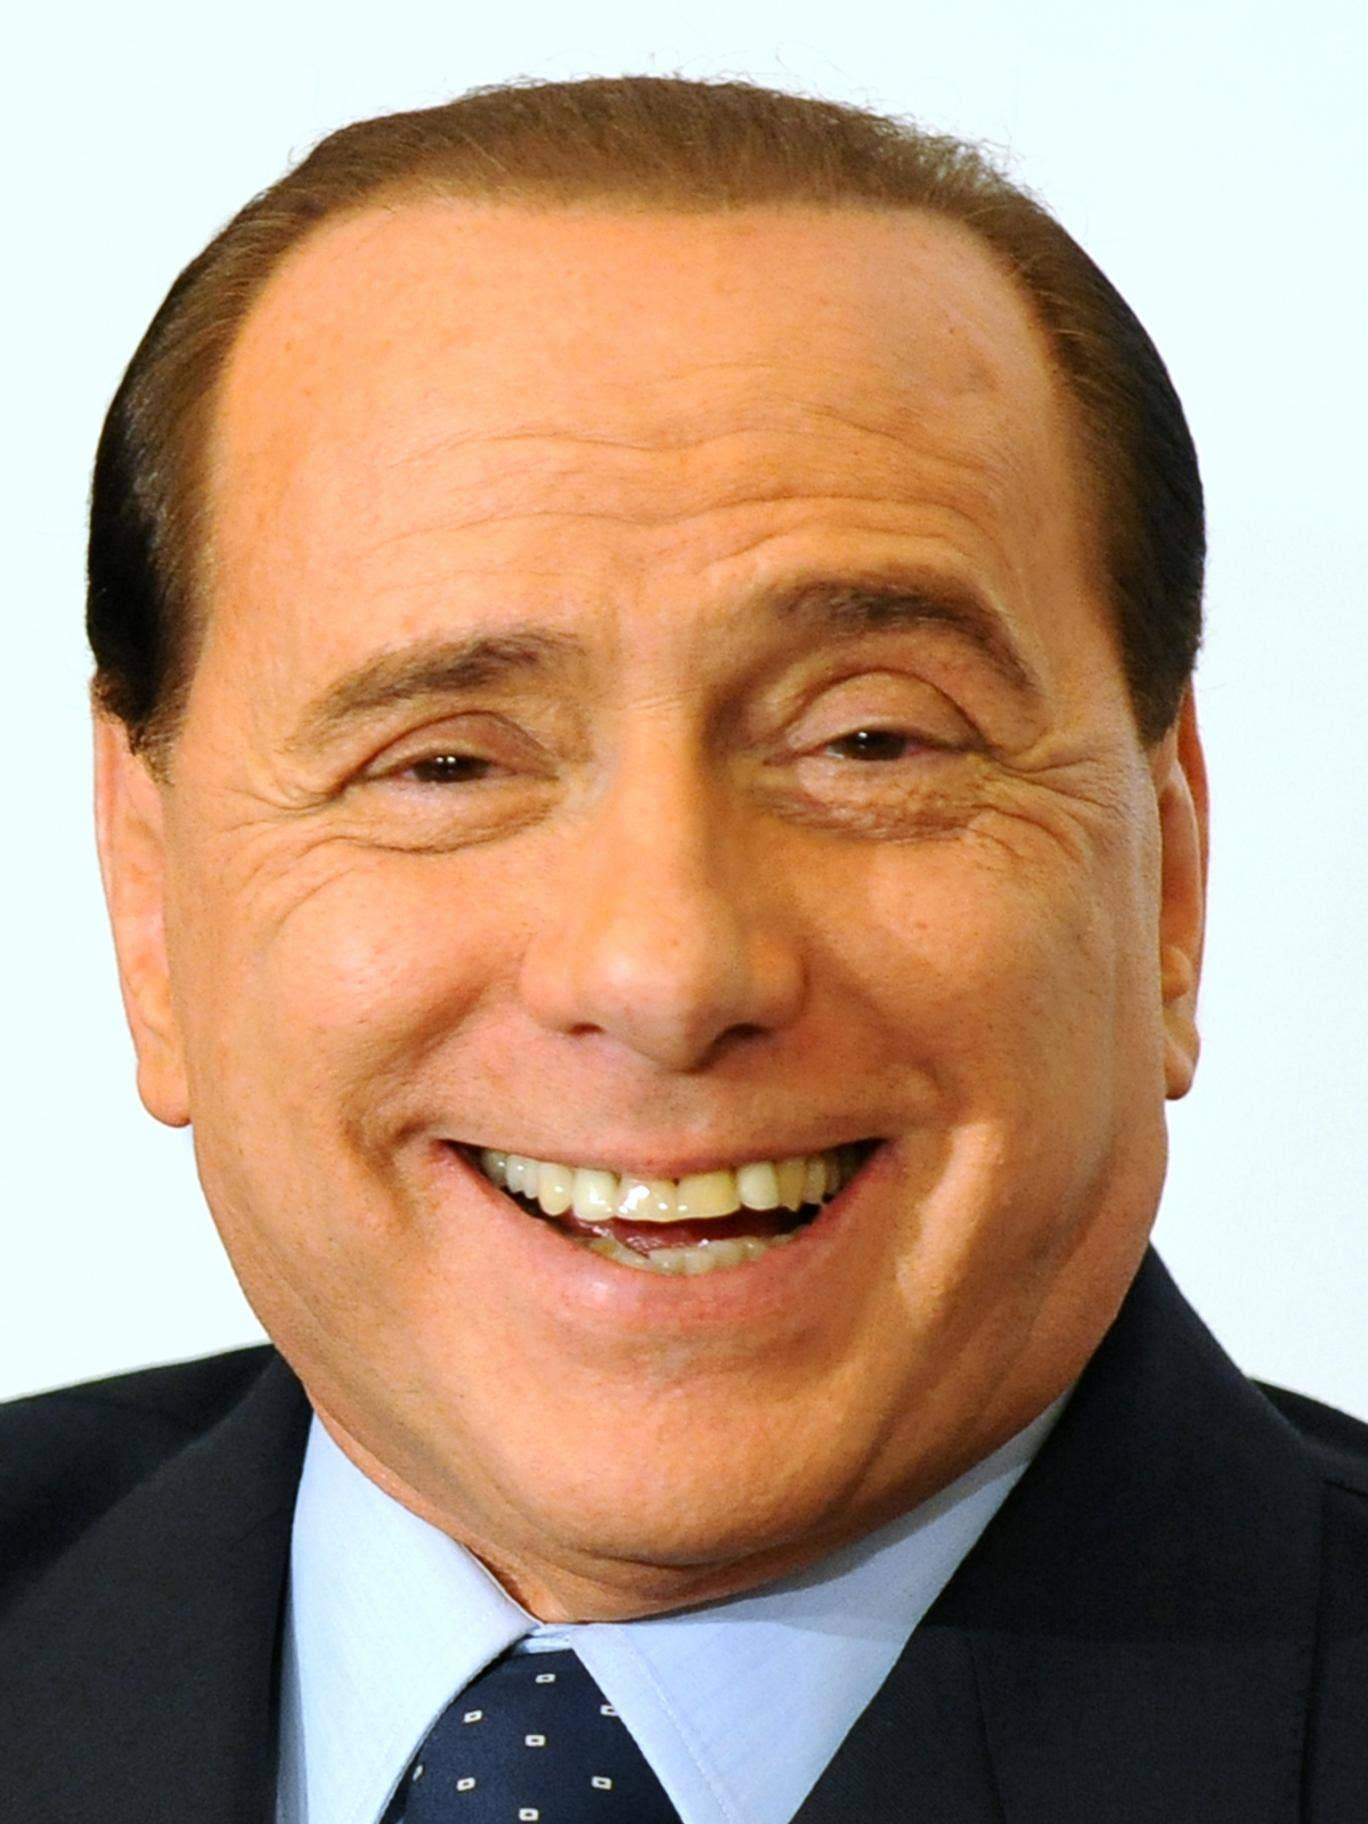 Berlusconihas repeatedly changed his mind in the last few months on whether he will stand in the election